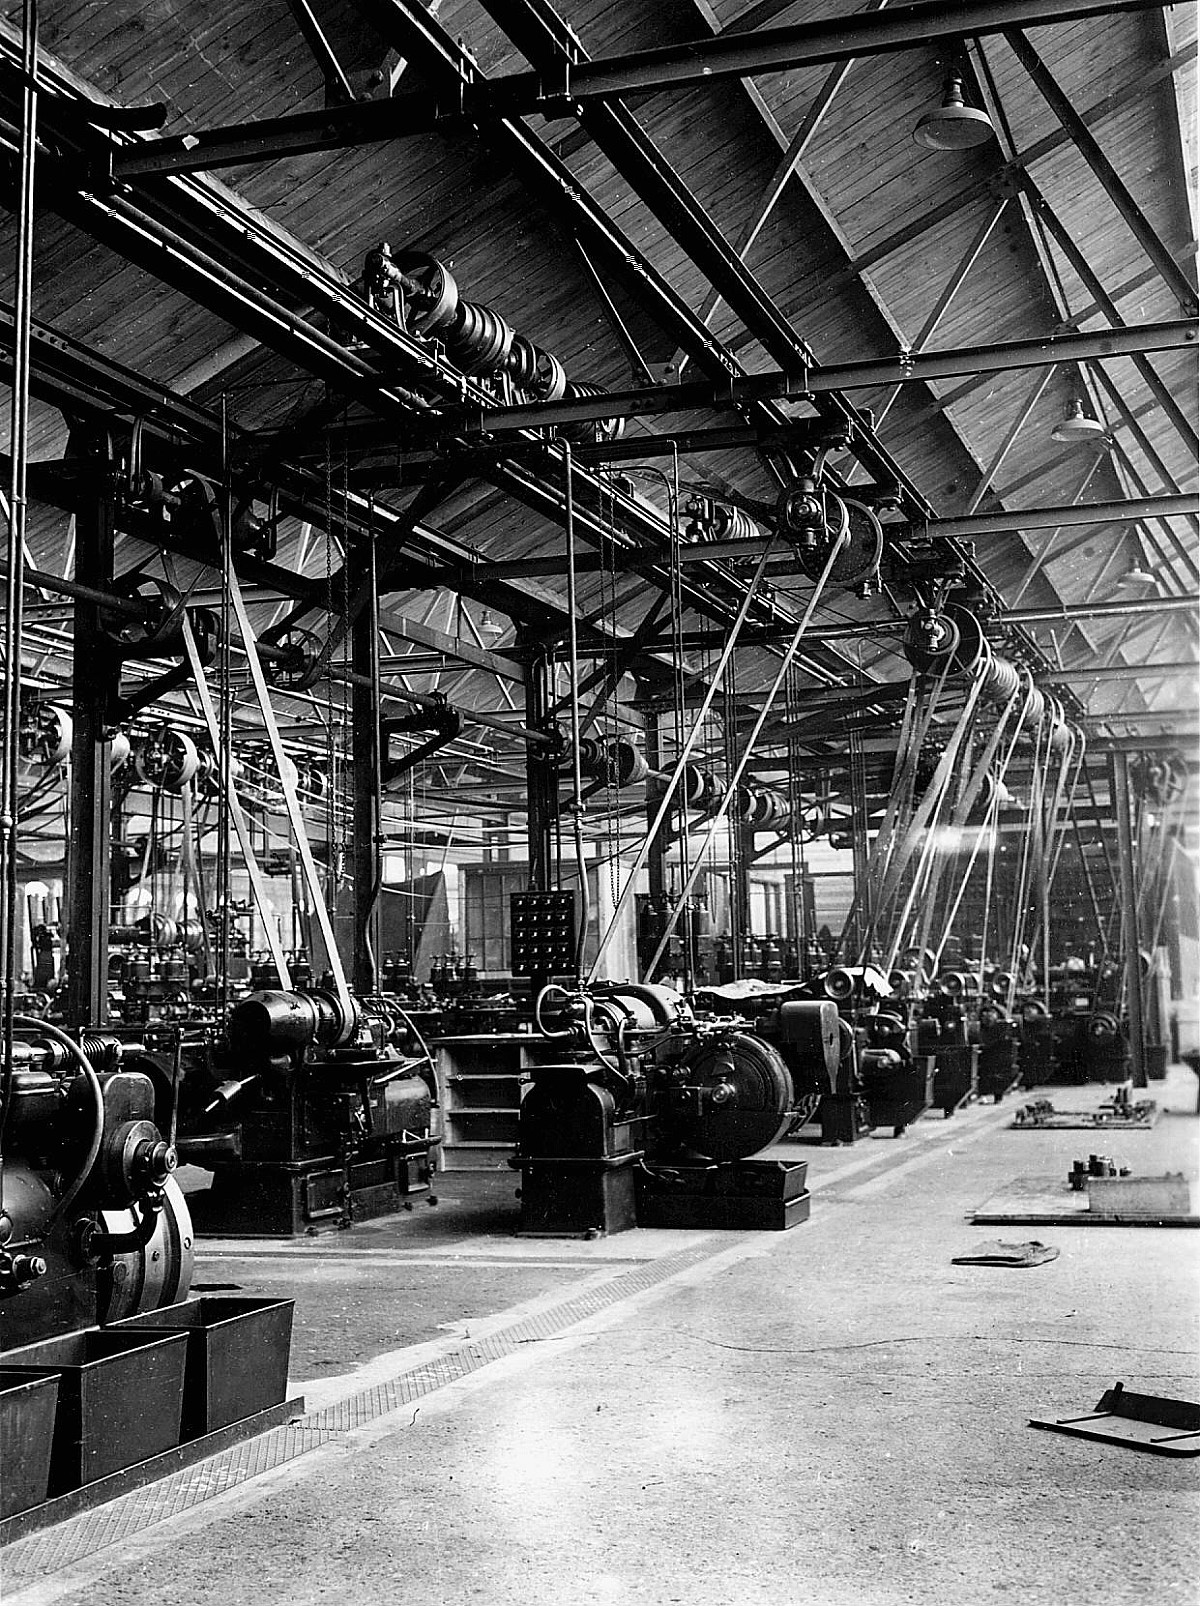 GFA 21/189.3: Images Bedford plant